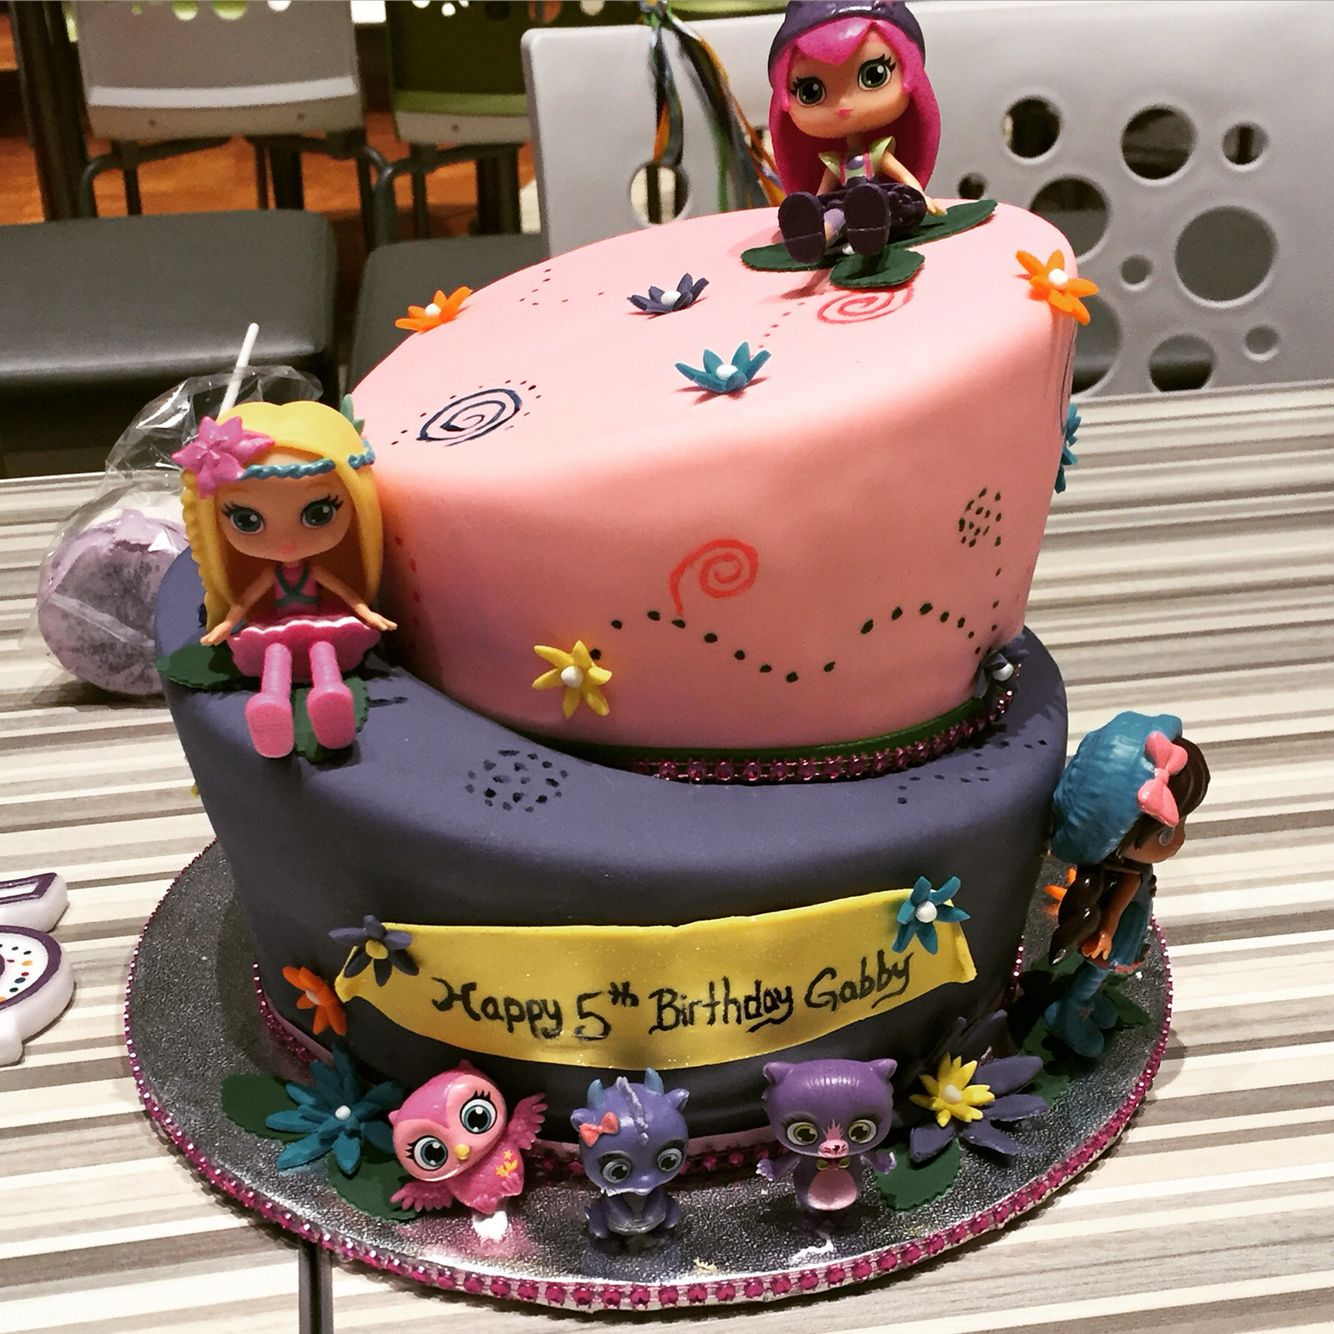 Little Charmers Cake Little Charmers Happy 5th Birthday Cake